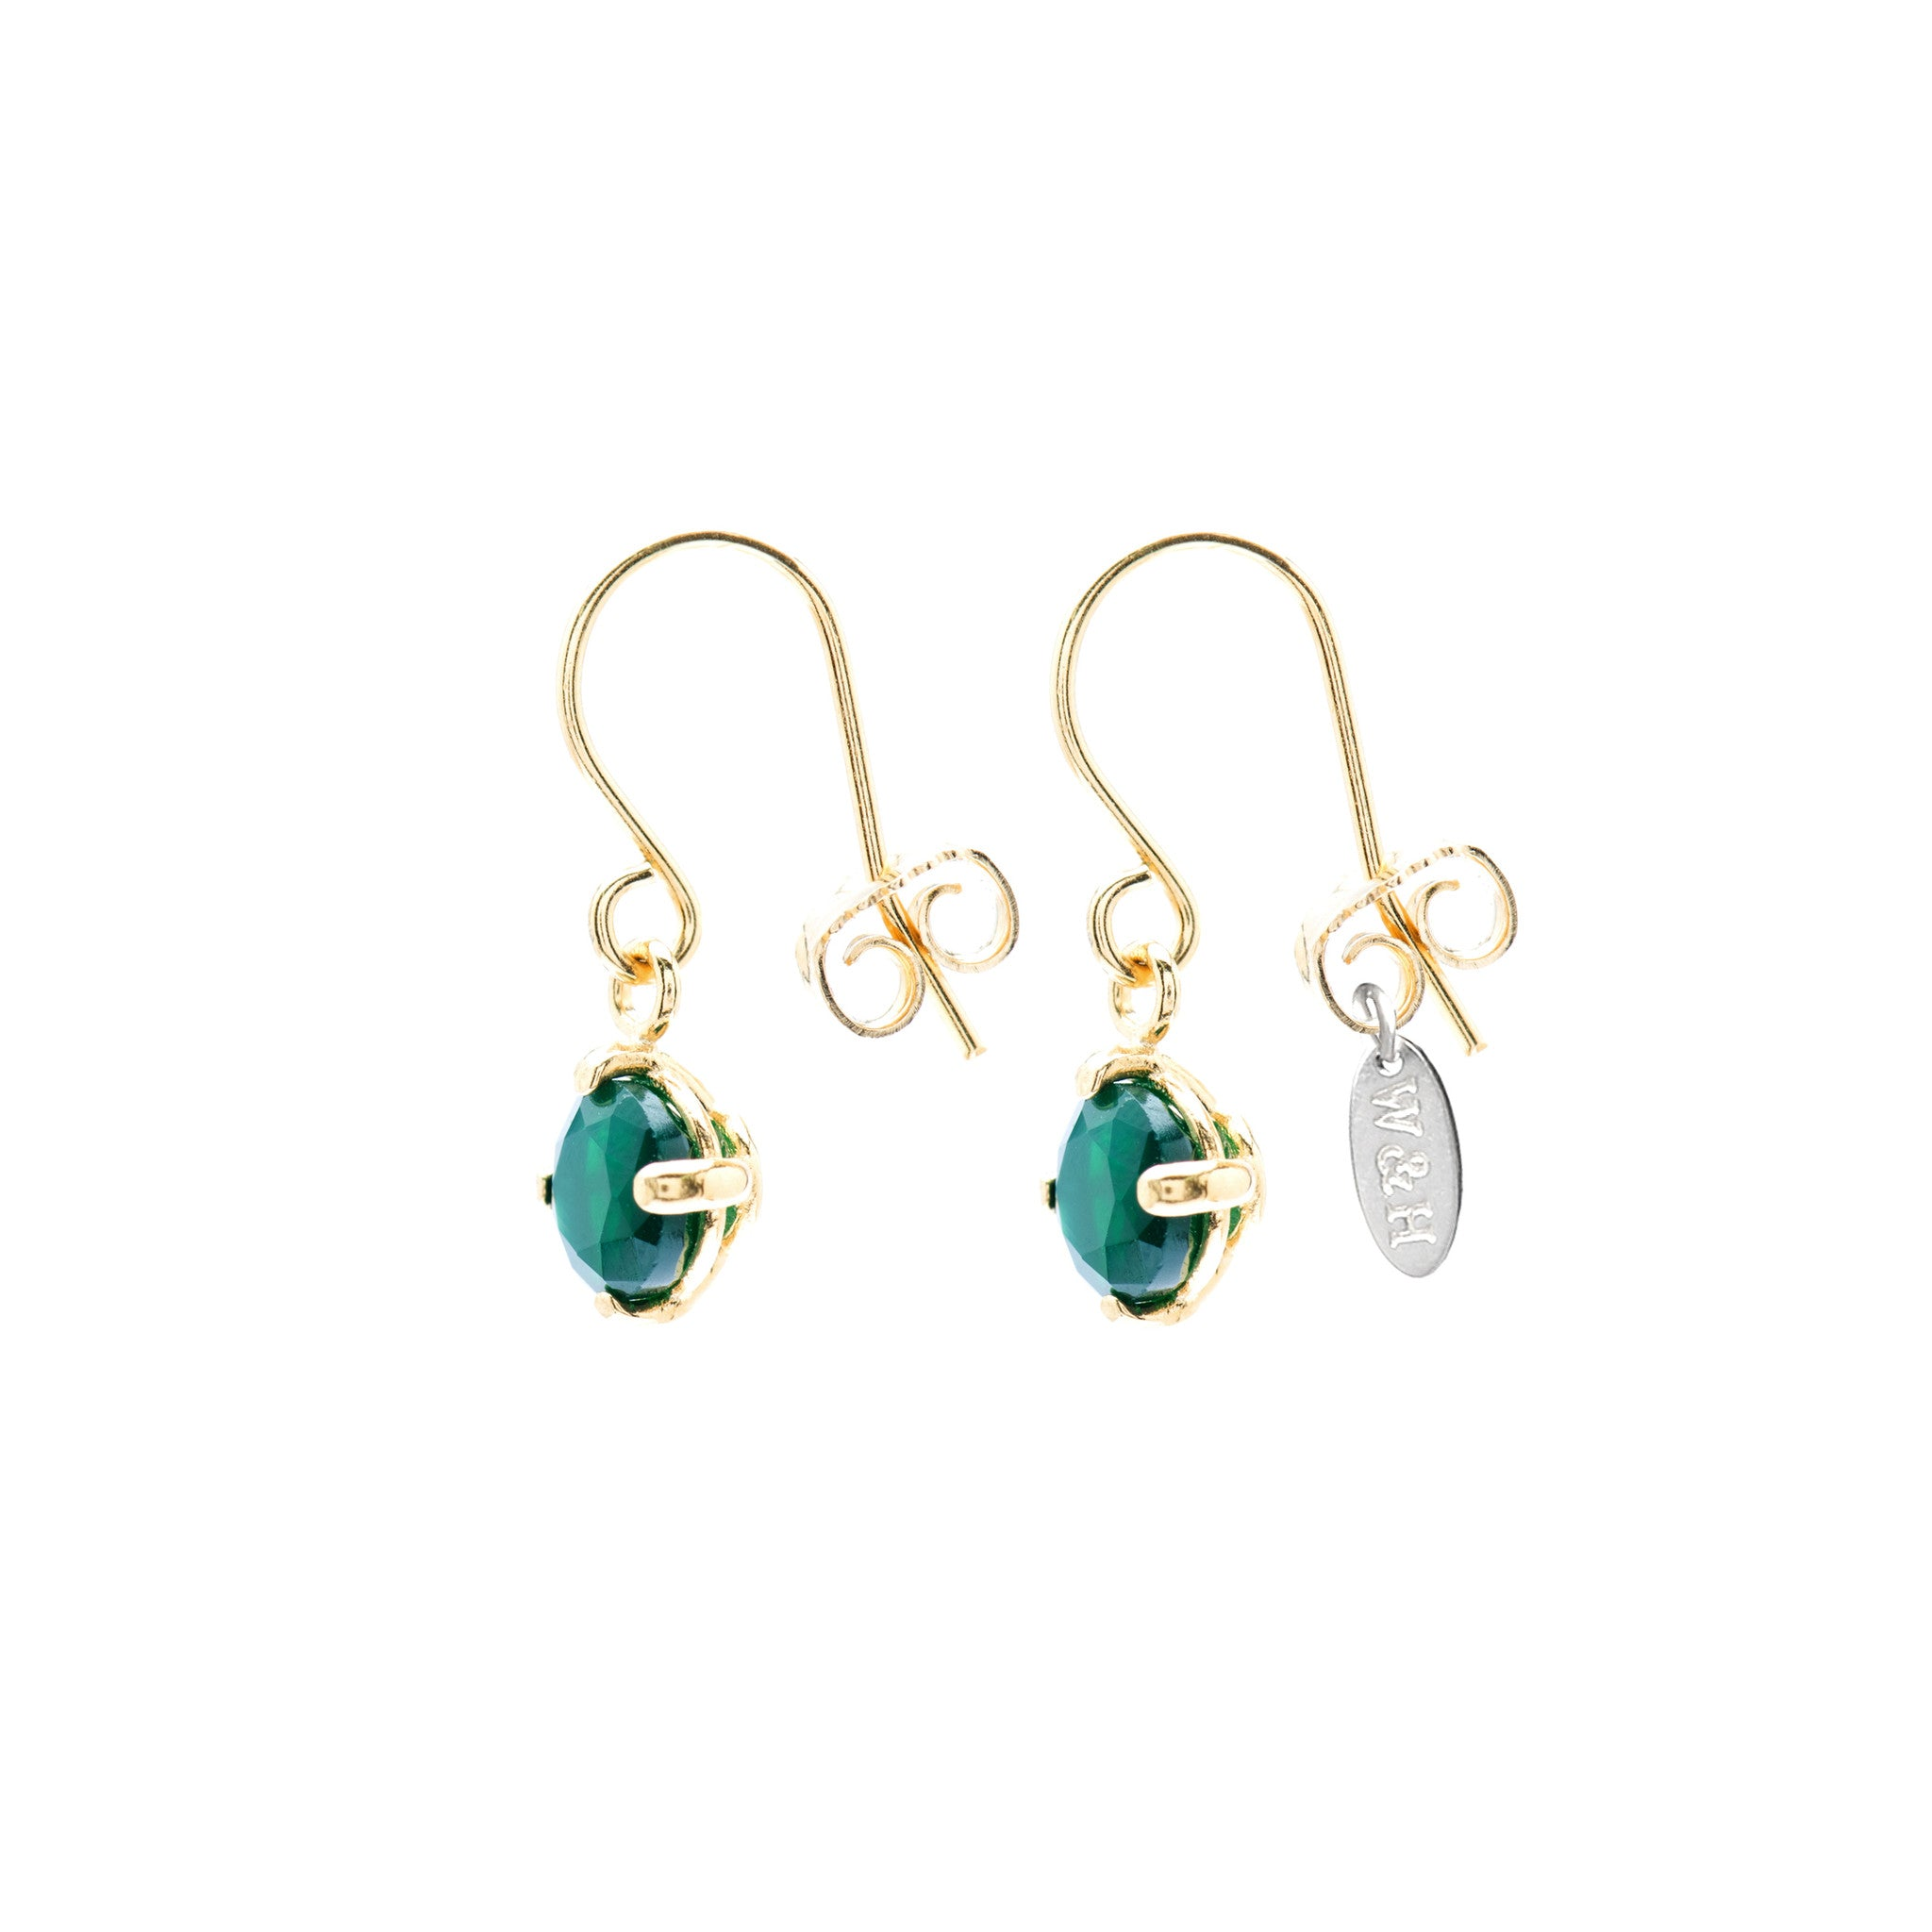 Hook Earrings with green Agate stone